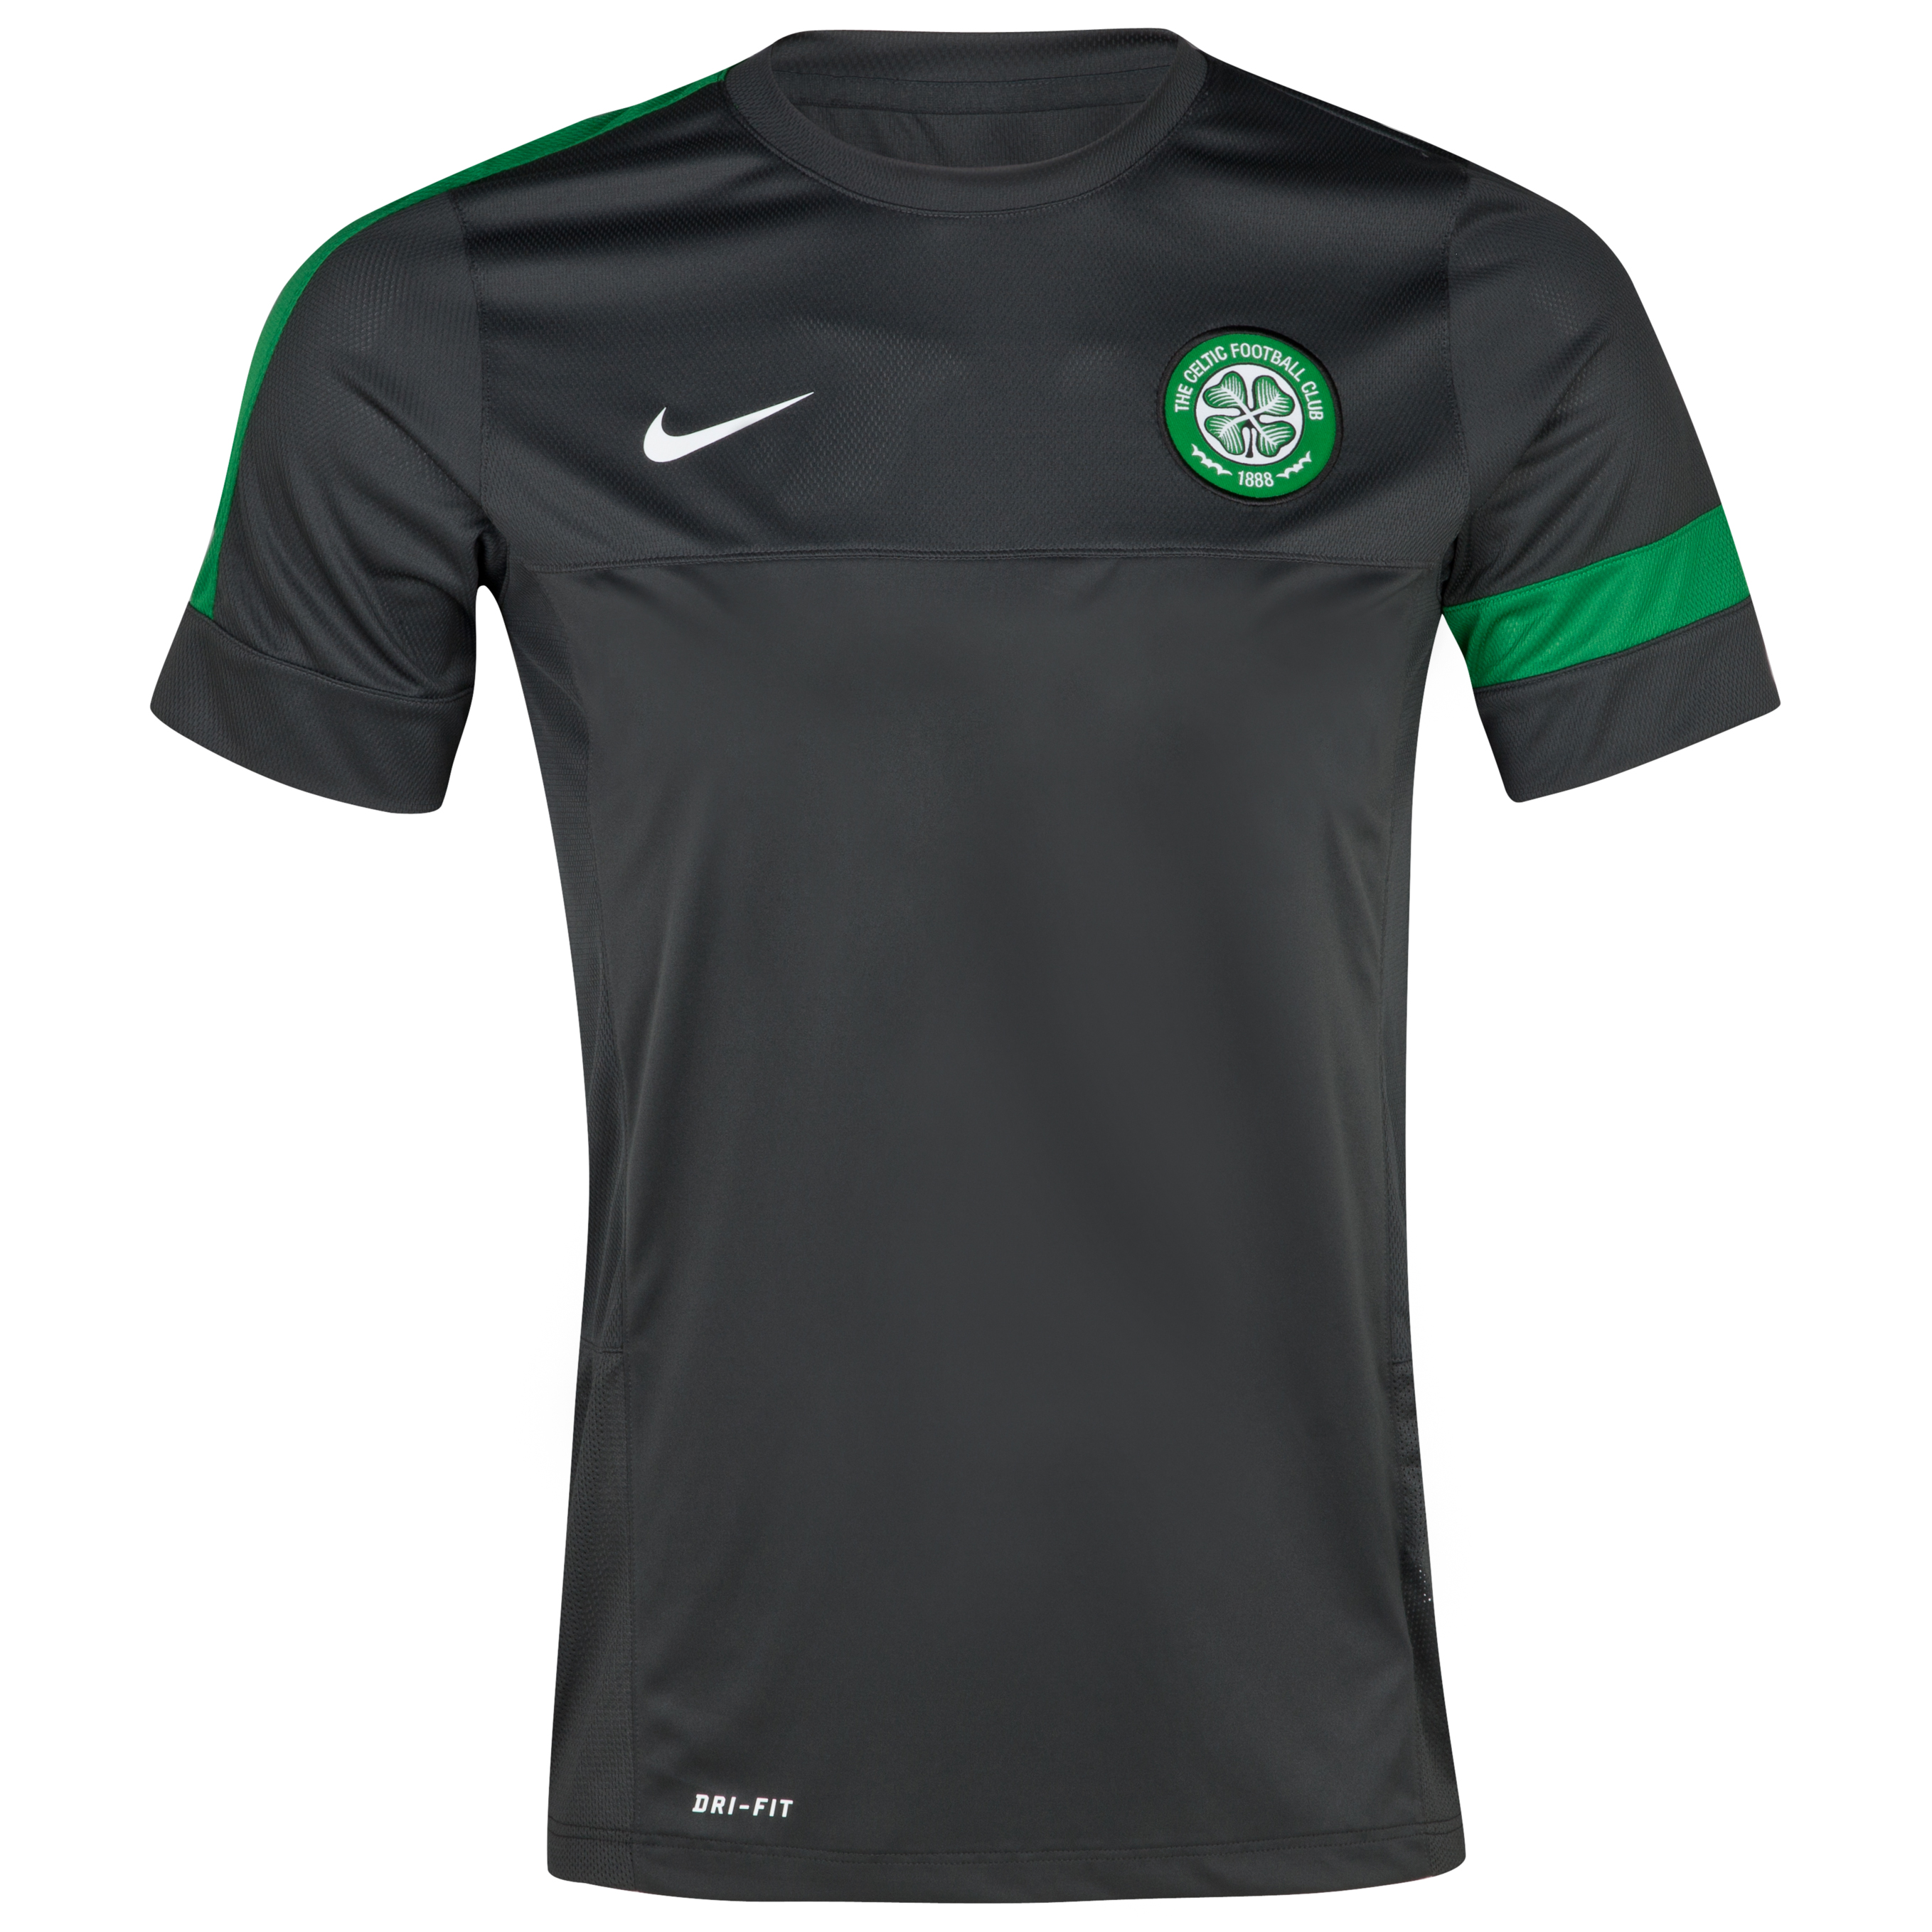 Celtic Short Sleeve Training Top 1 - Anthracite/Anthracite/White - Youths